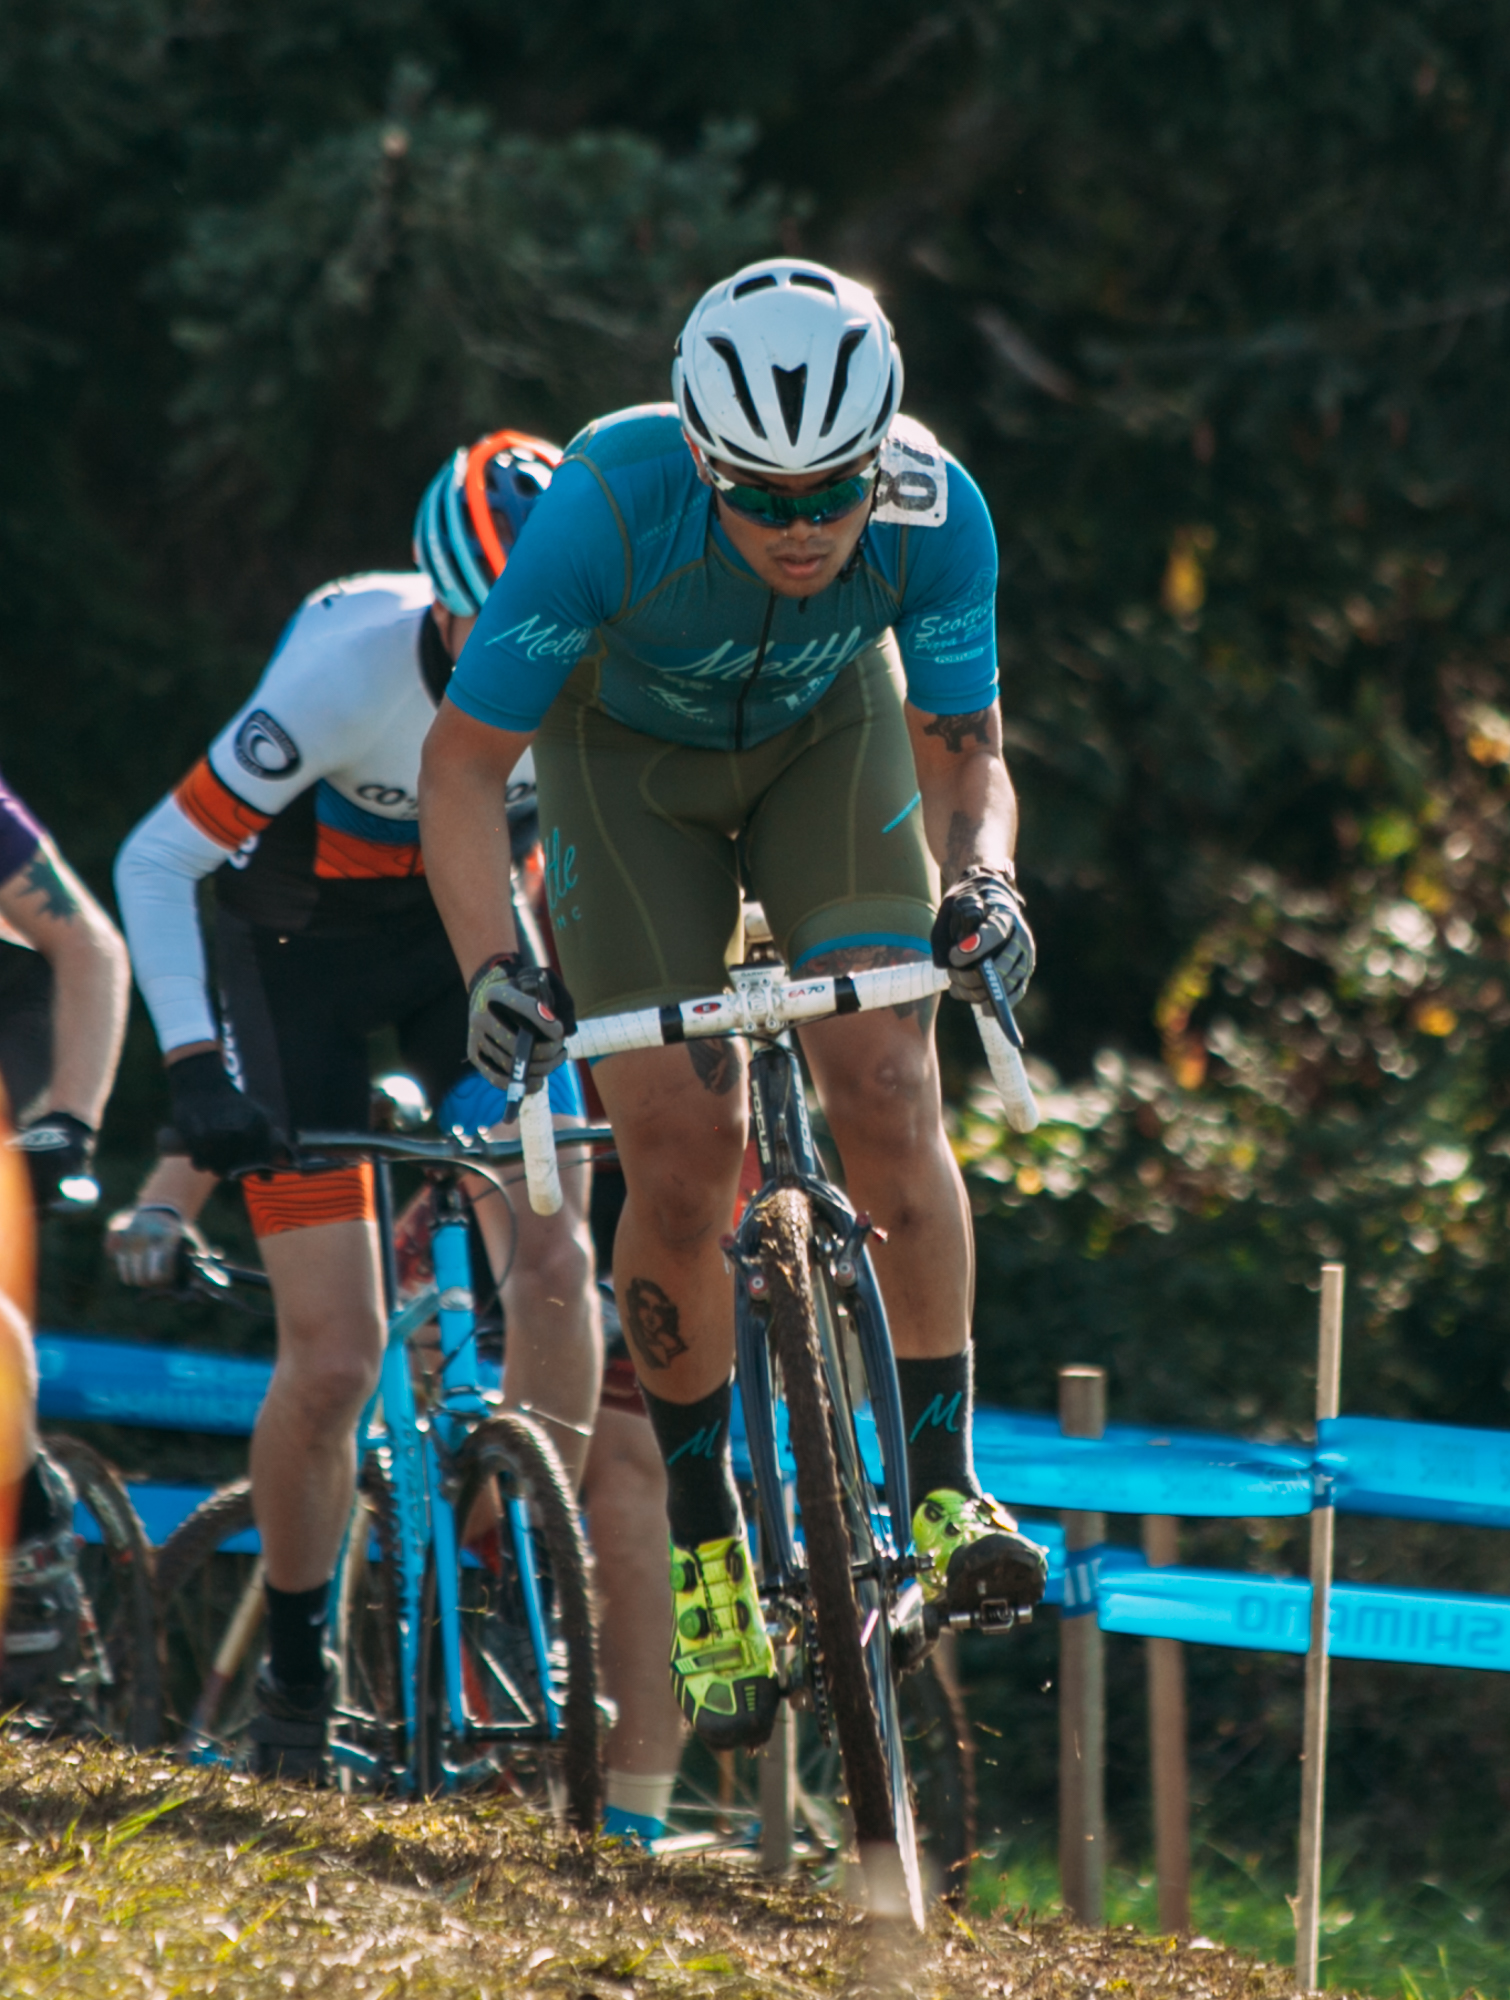 Cyclocross18_CCCX_RainierHS-95-mettlecycling.jpg